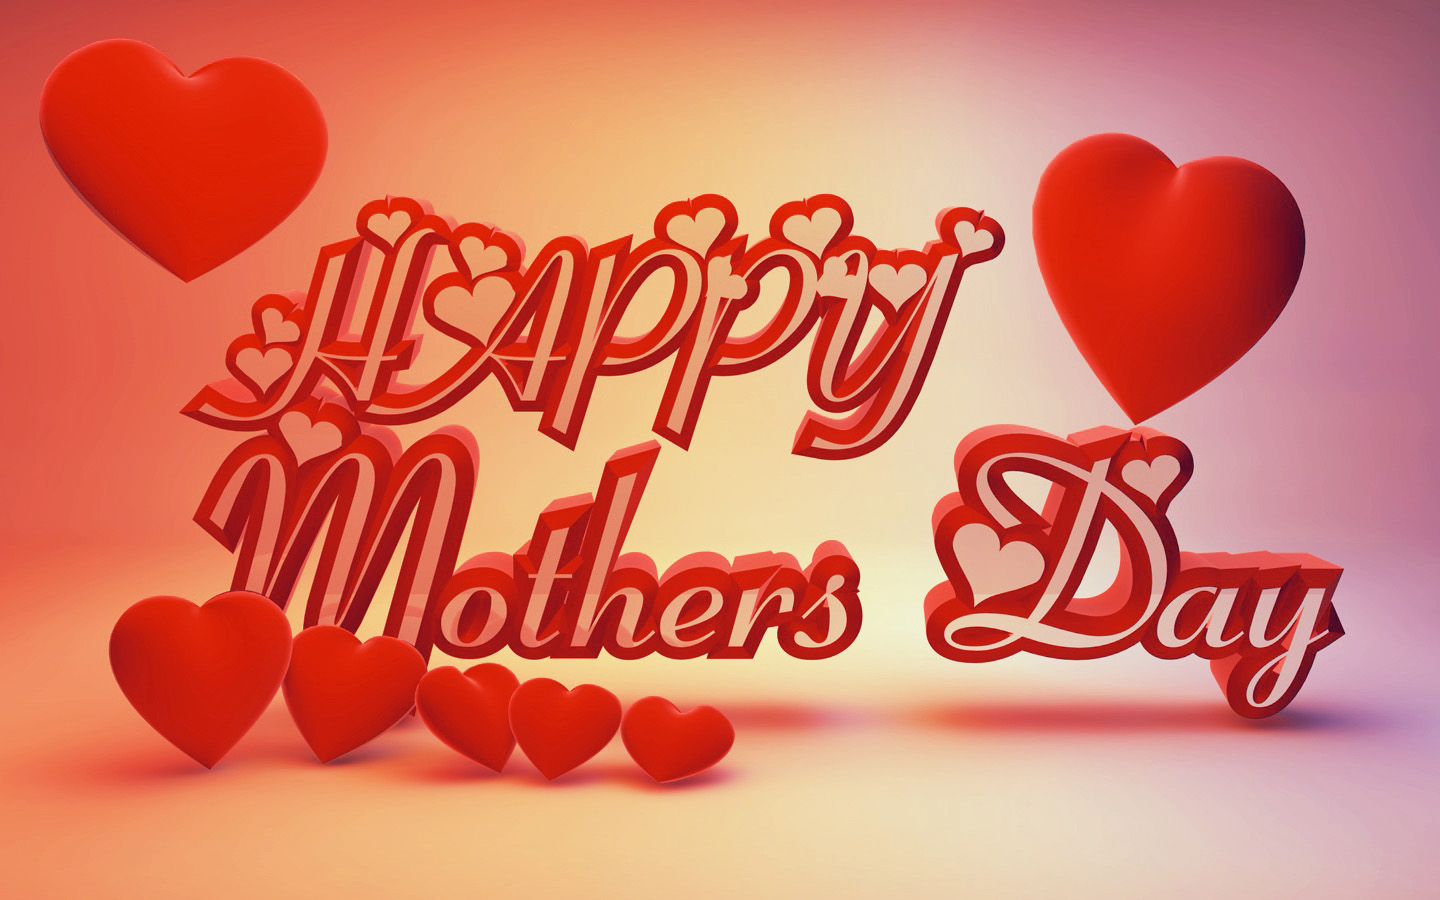 Khushi For Life Beautiful Heart For Happy Mothers Day 2013 Wishes